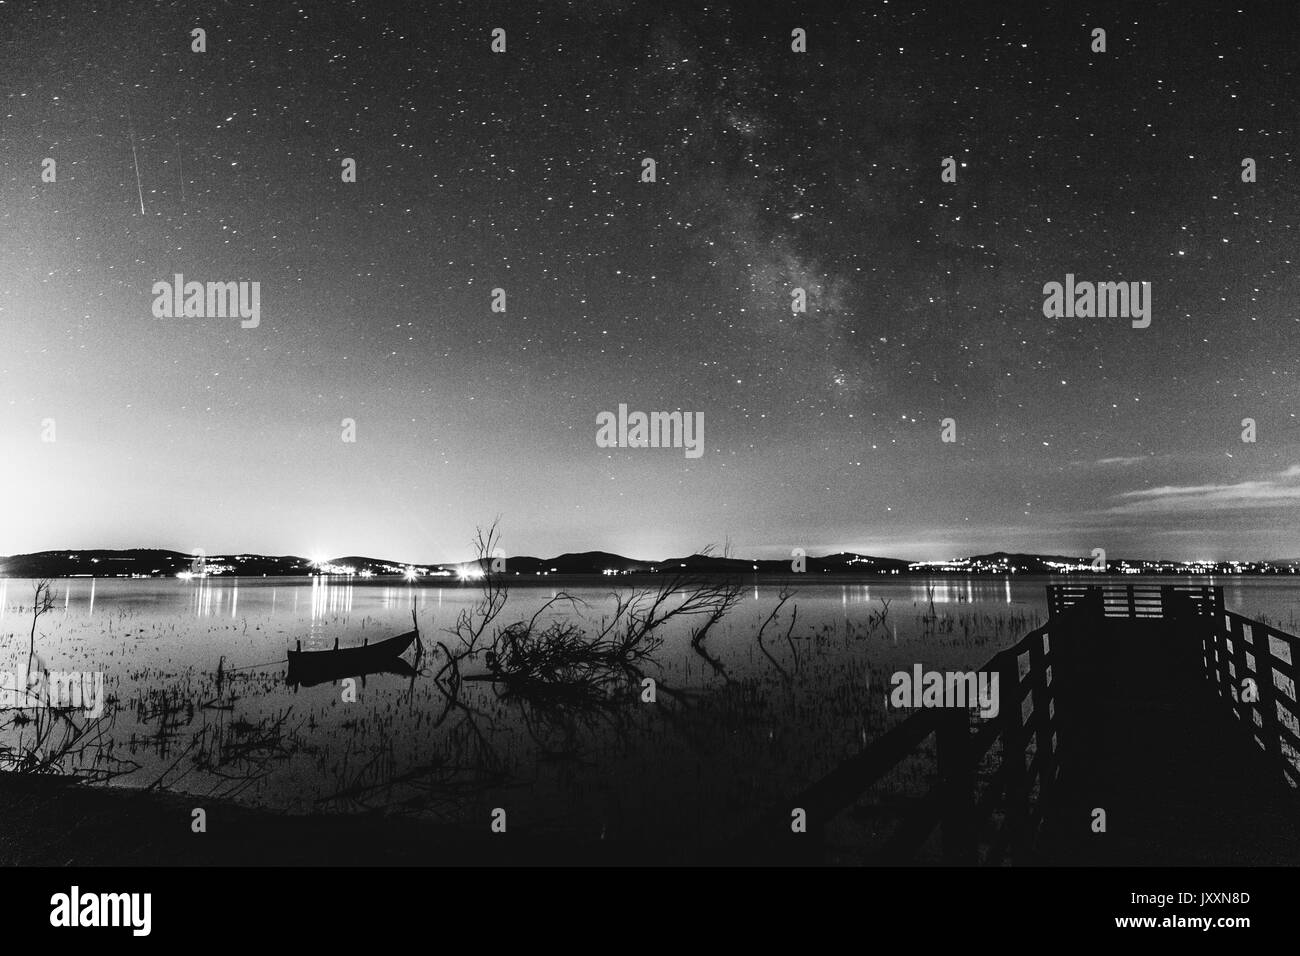 Beautiful view of night sky with milky way in the center, over a lake with pier, trees and a little boat - Stock Image